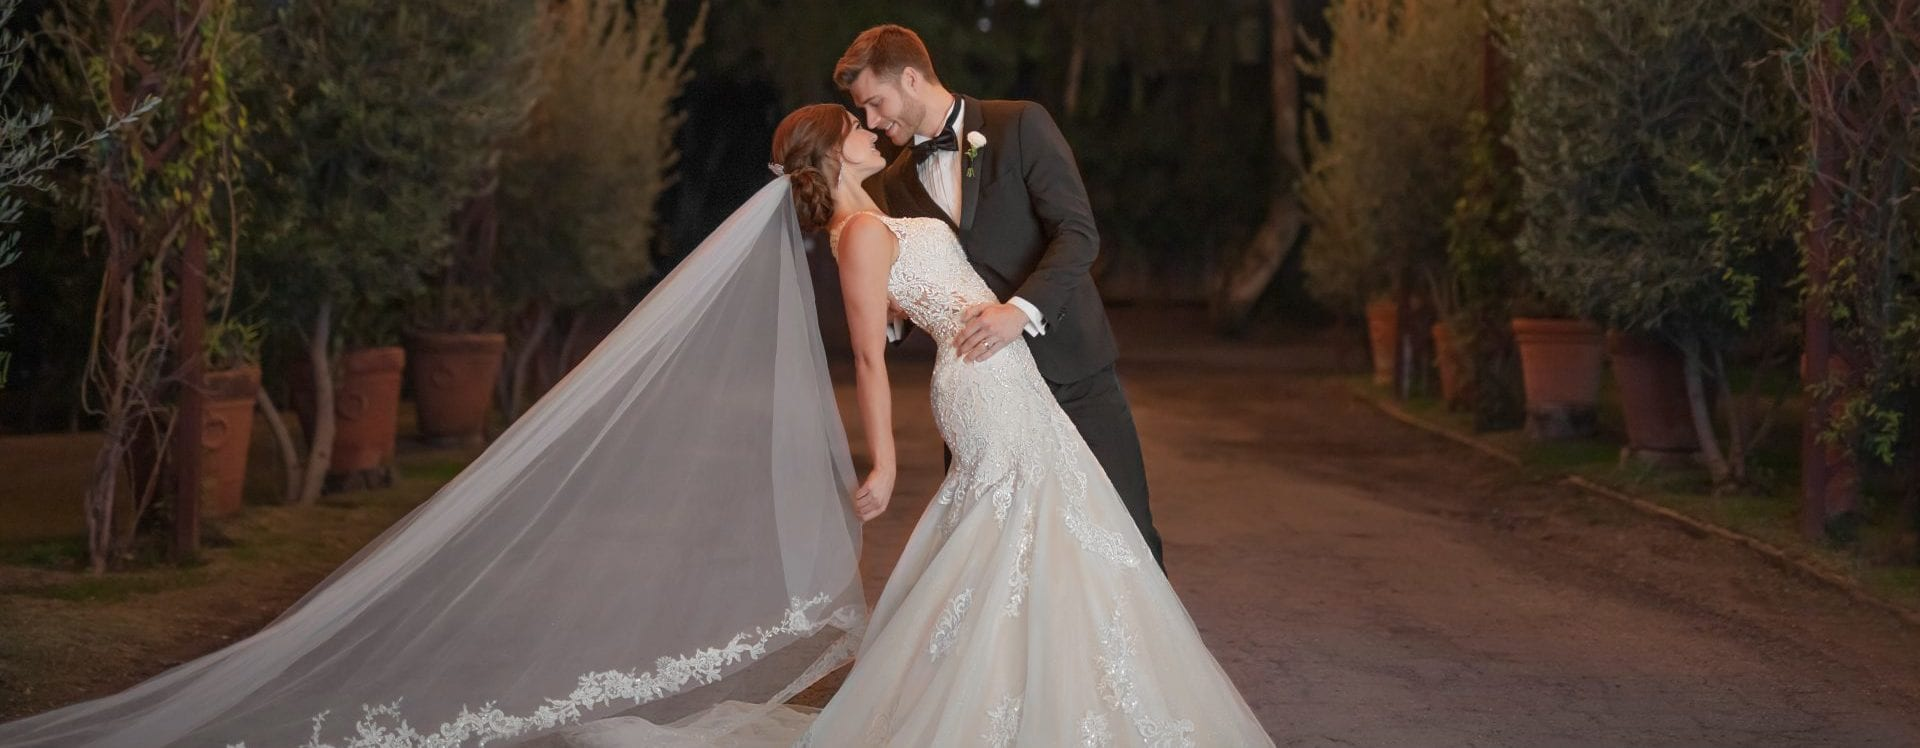 Mermaid Wedding Dresses at Gown Boutique of Charleston